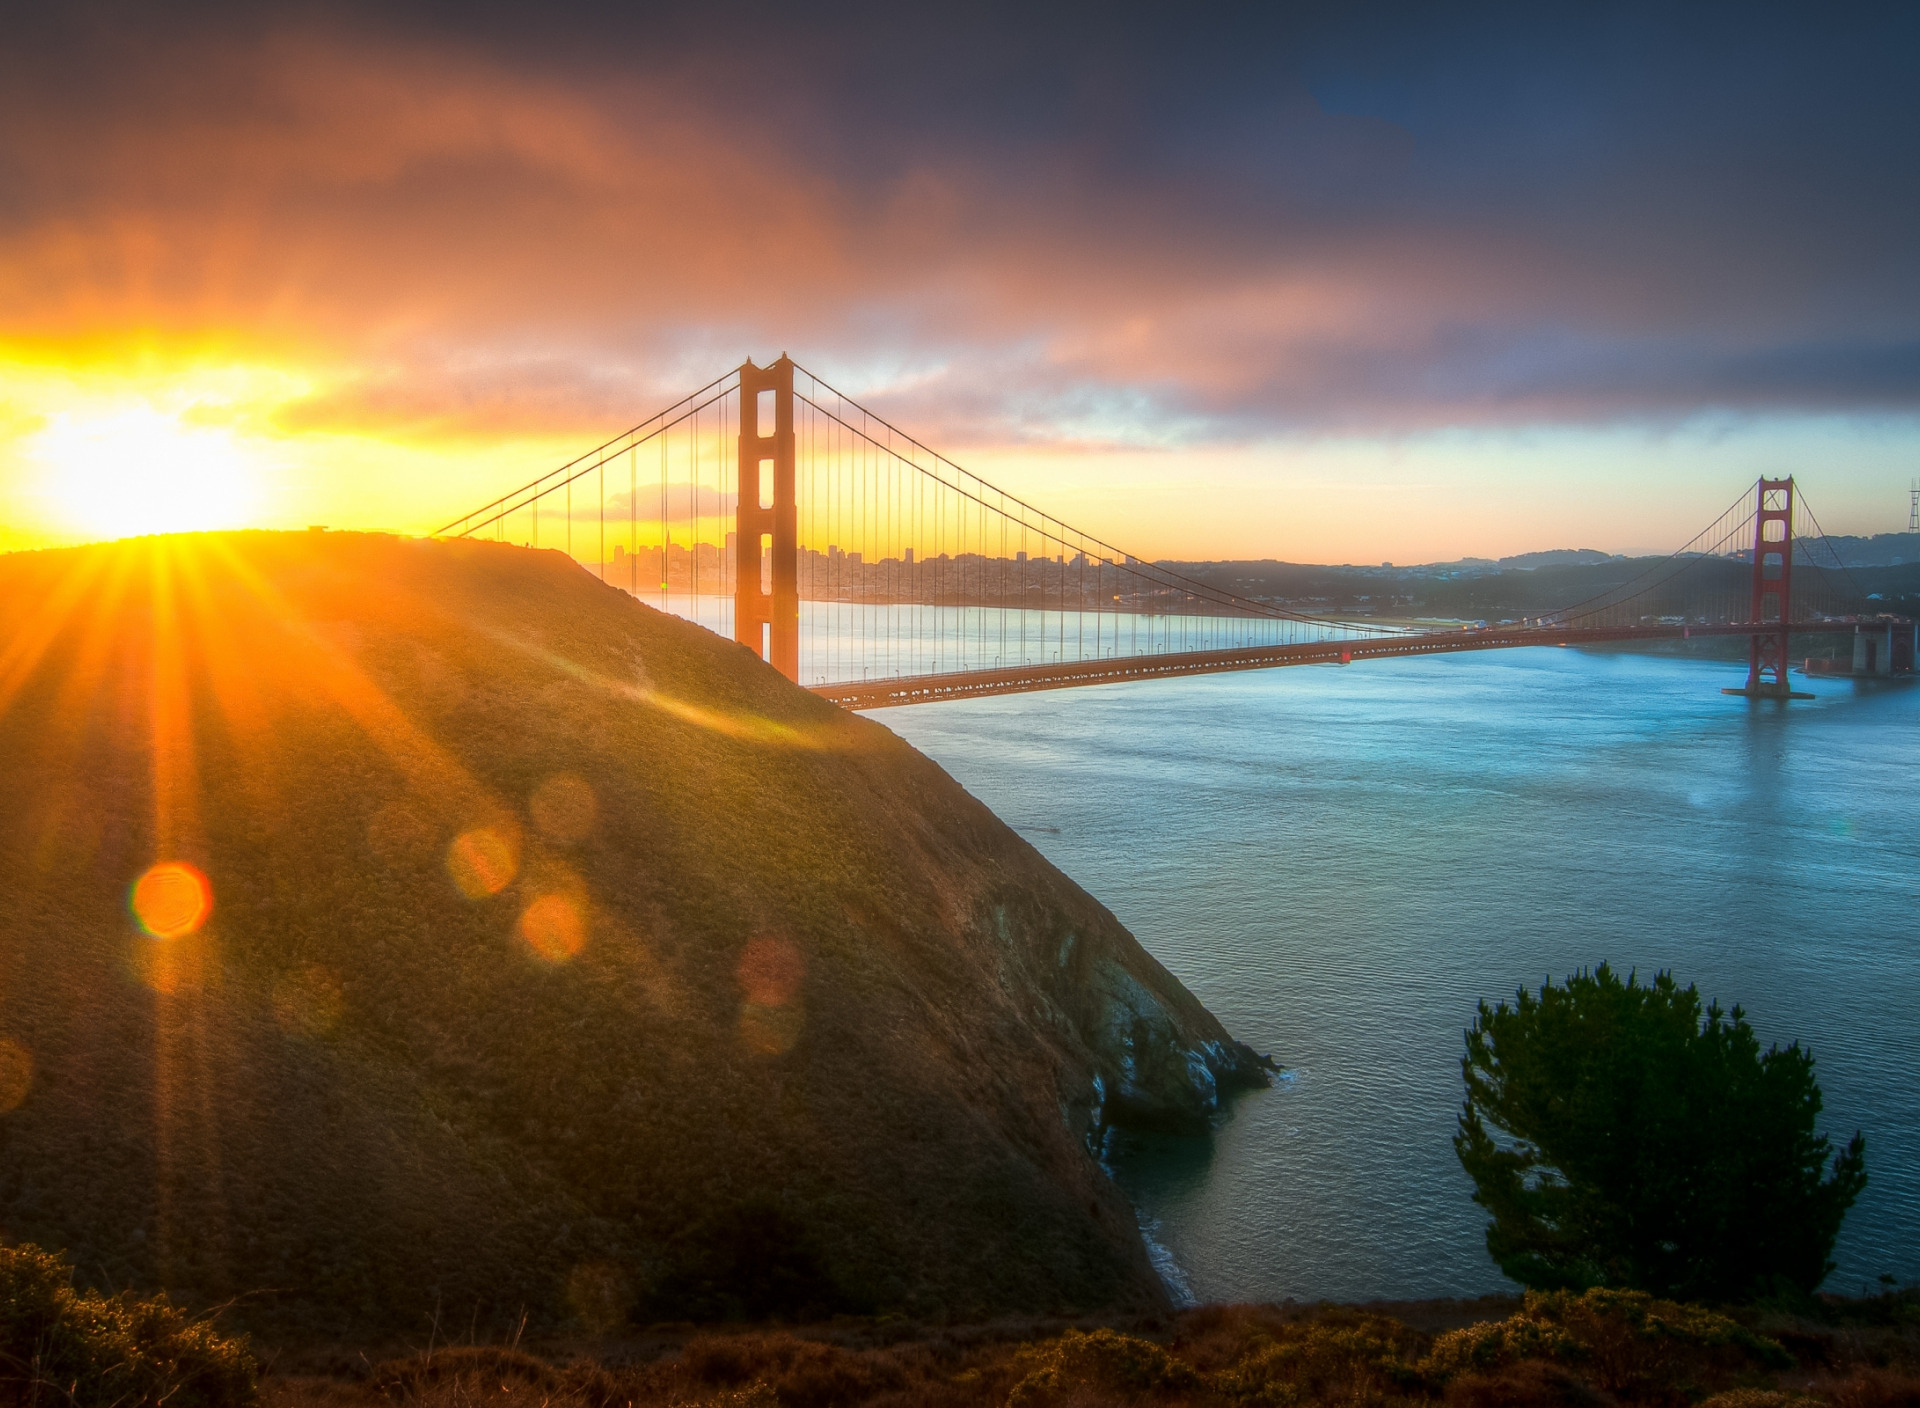 sunrise pictures golden gate - HD1280×1024